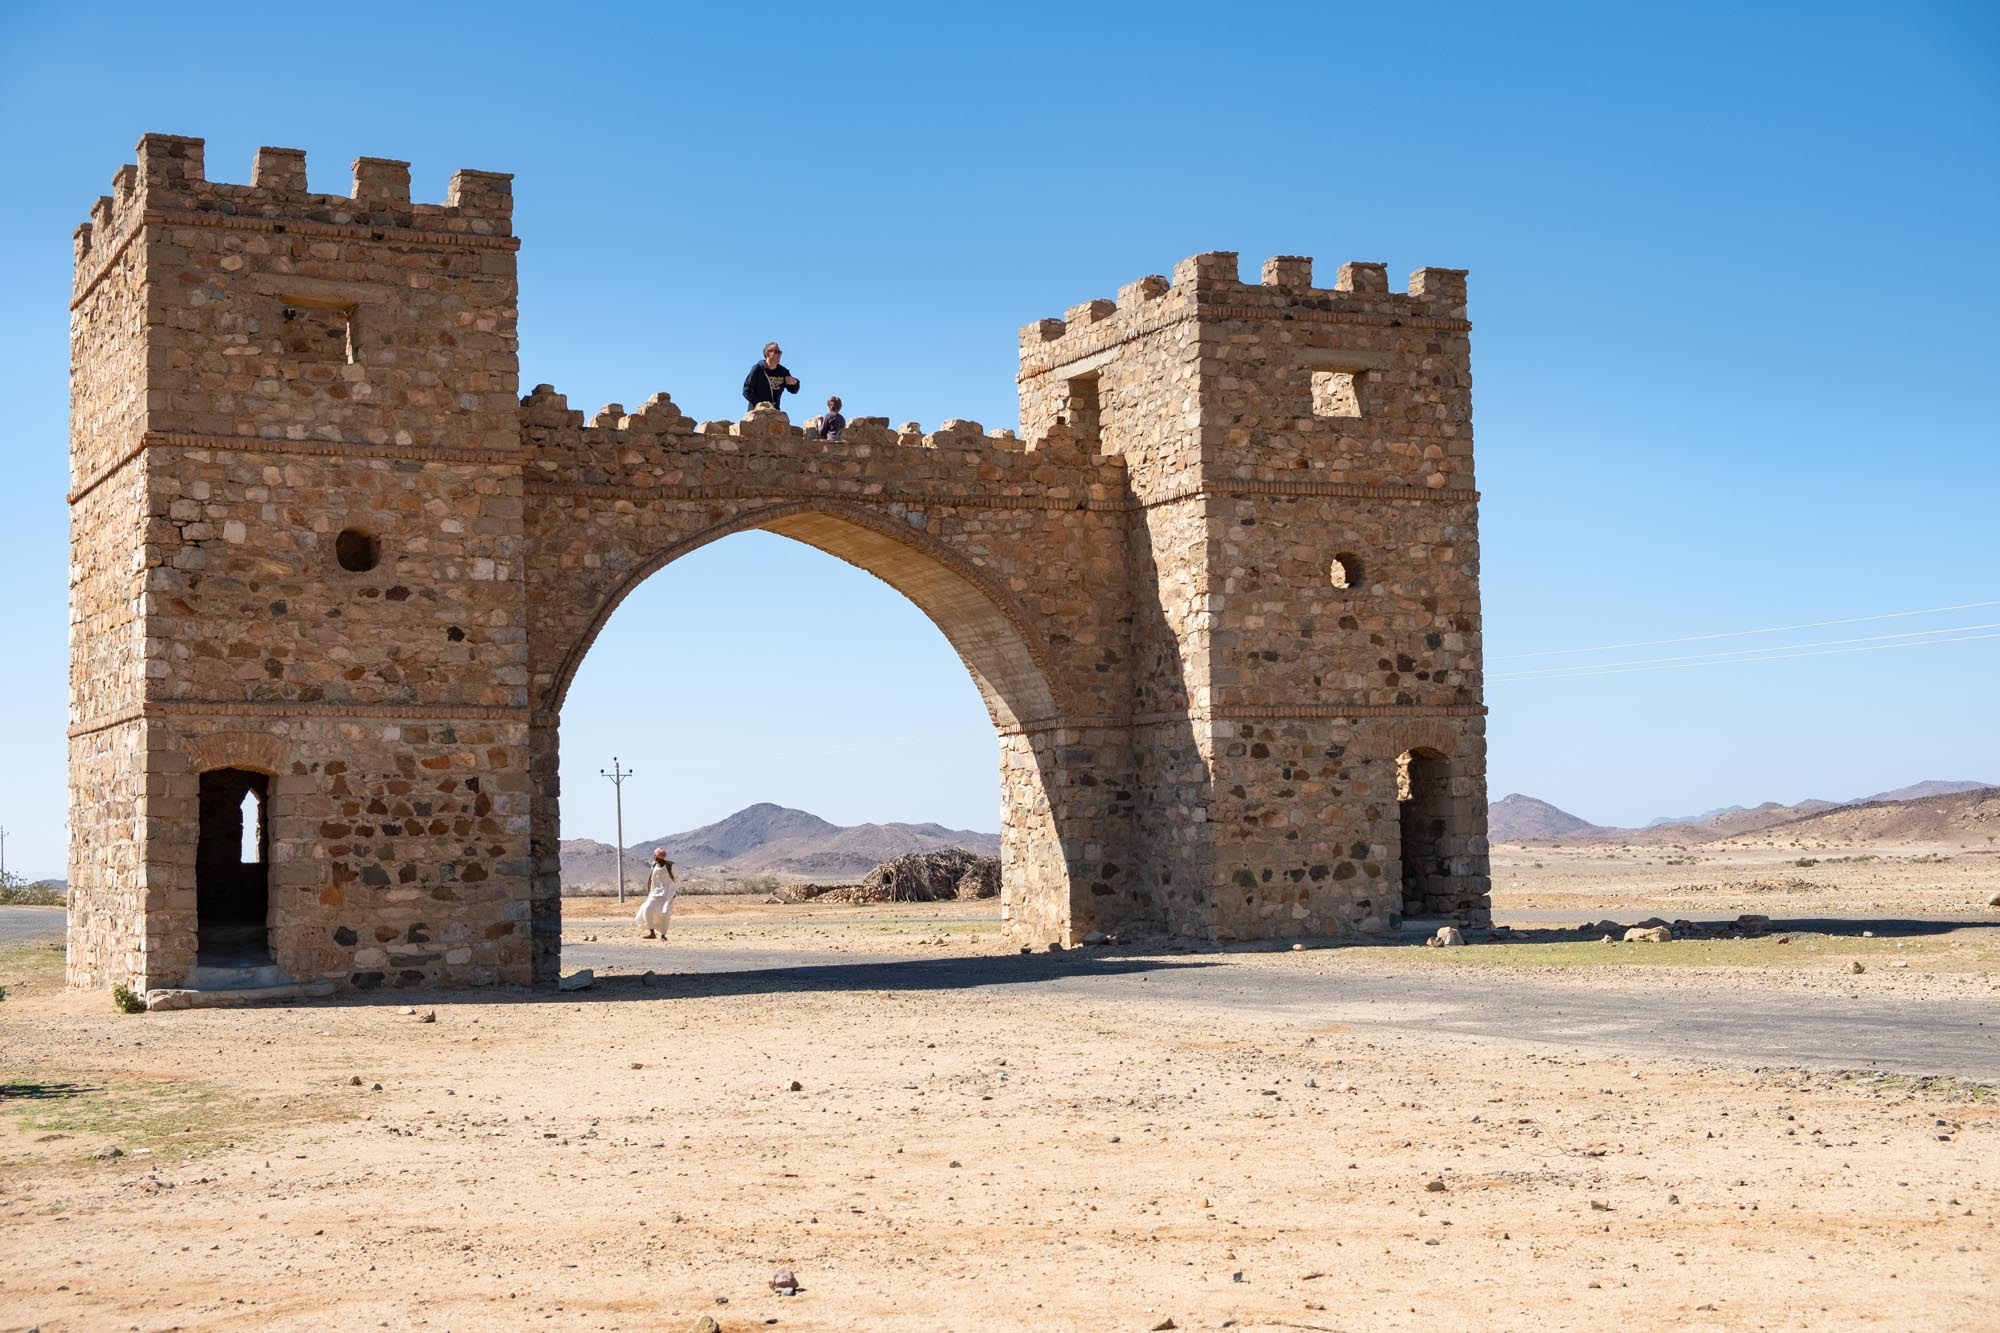 Arkawit Gate, Sudan